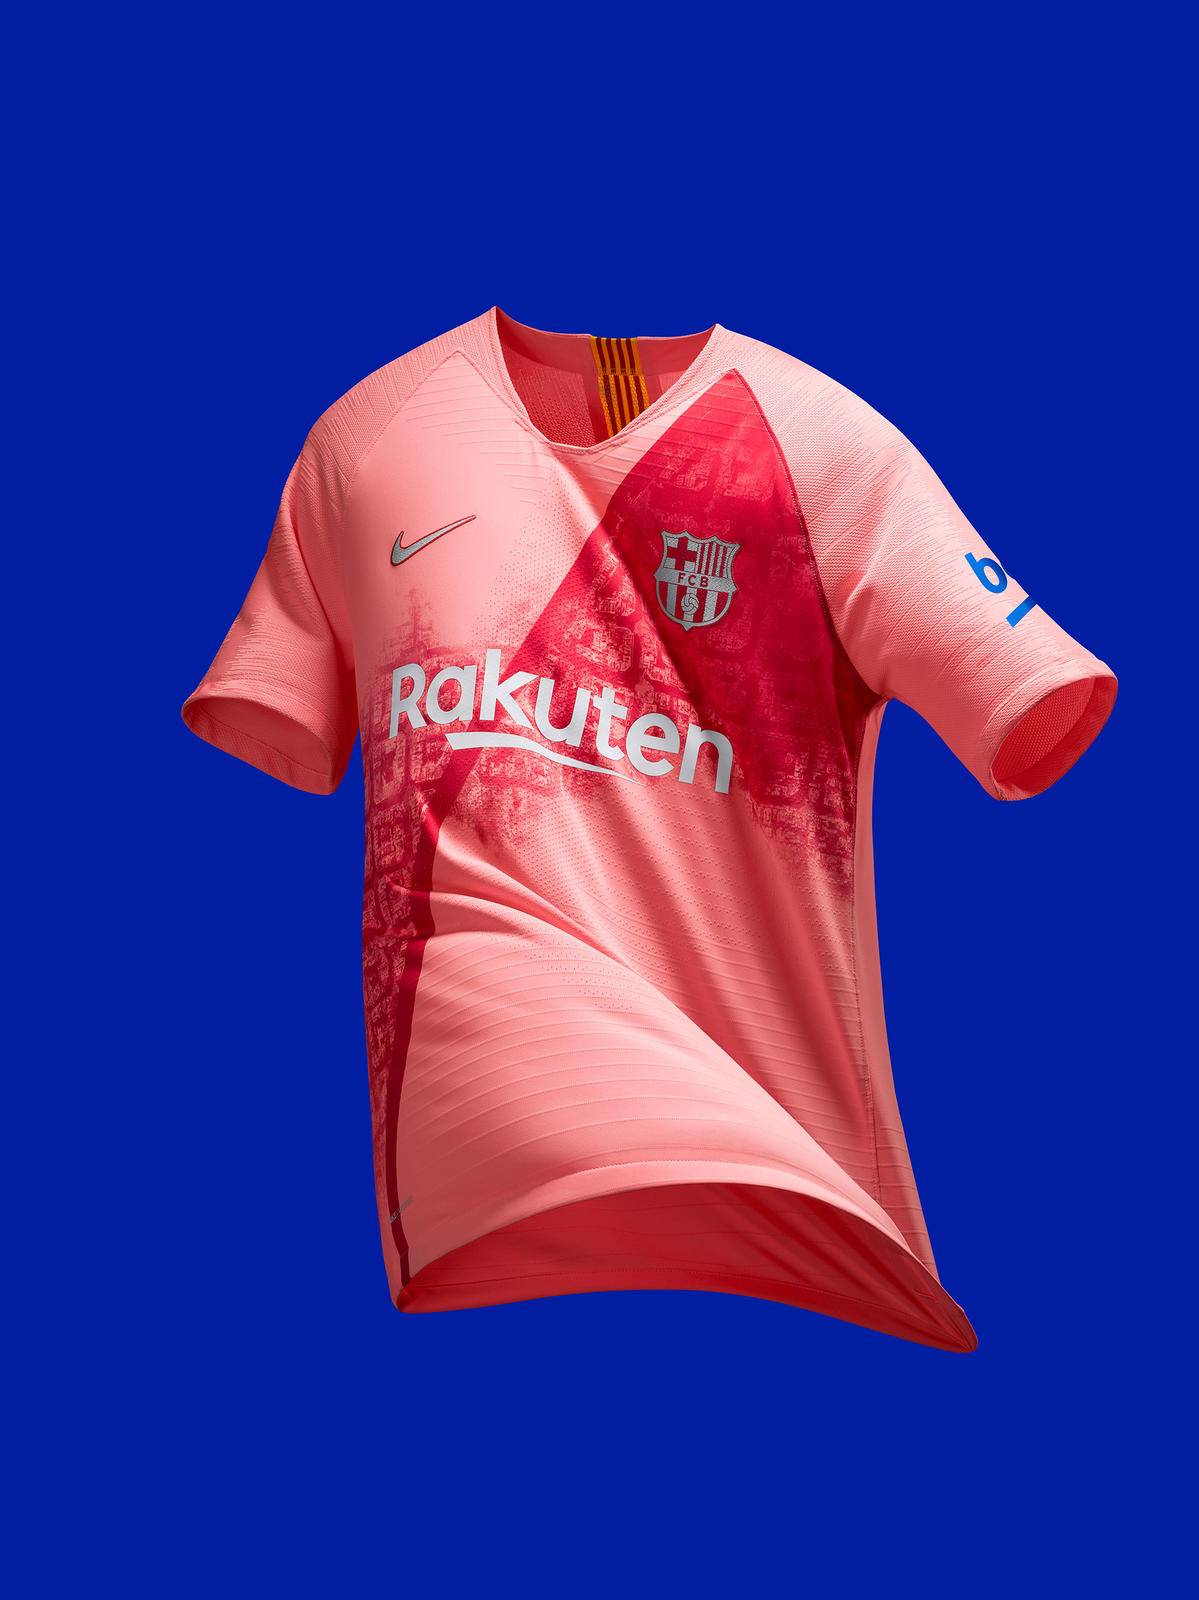 separation shoes dc746 2168d FC Barcelona's 2018-19 Third Kit Continues a Bold and ...